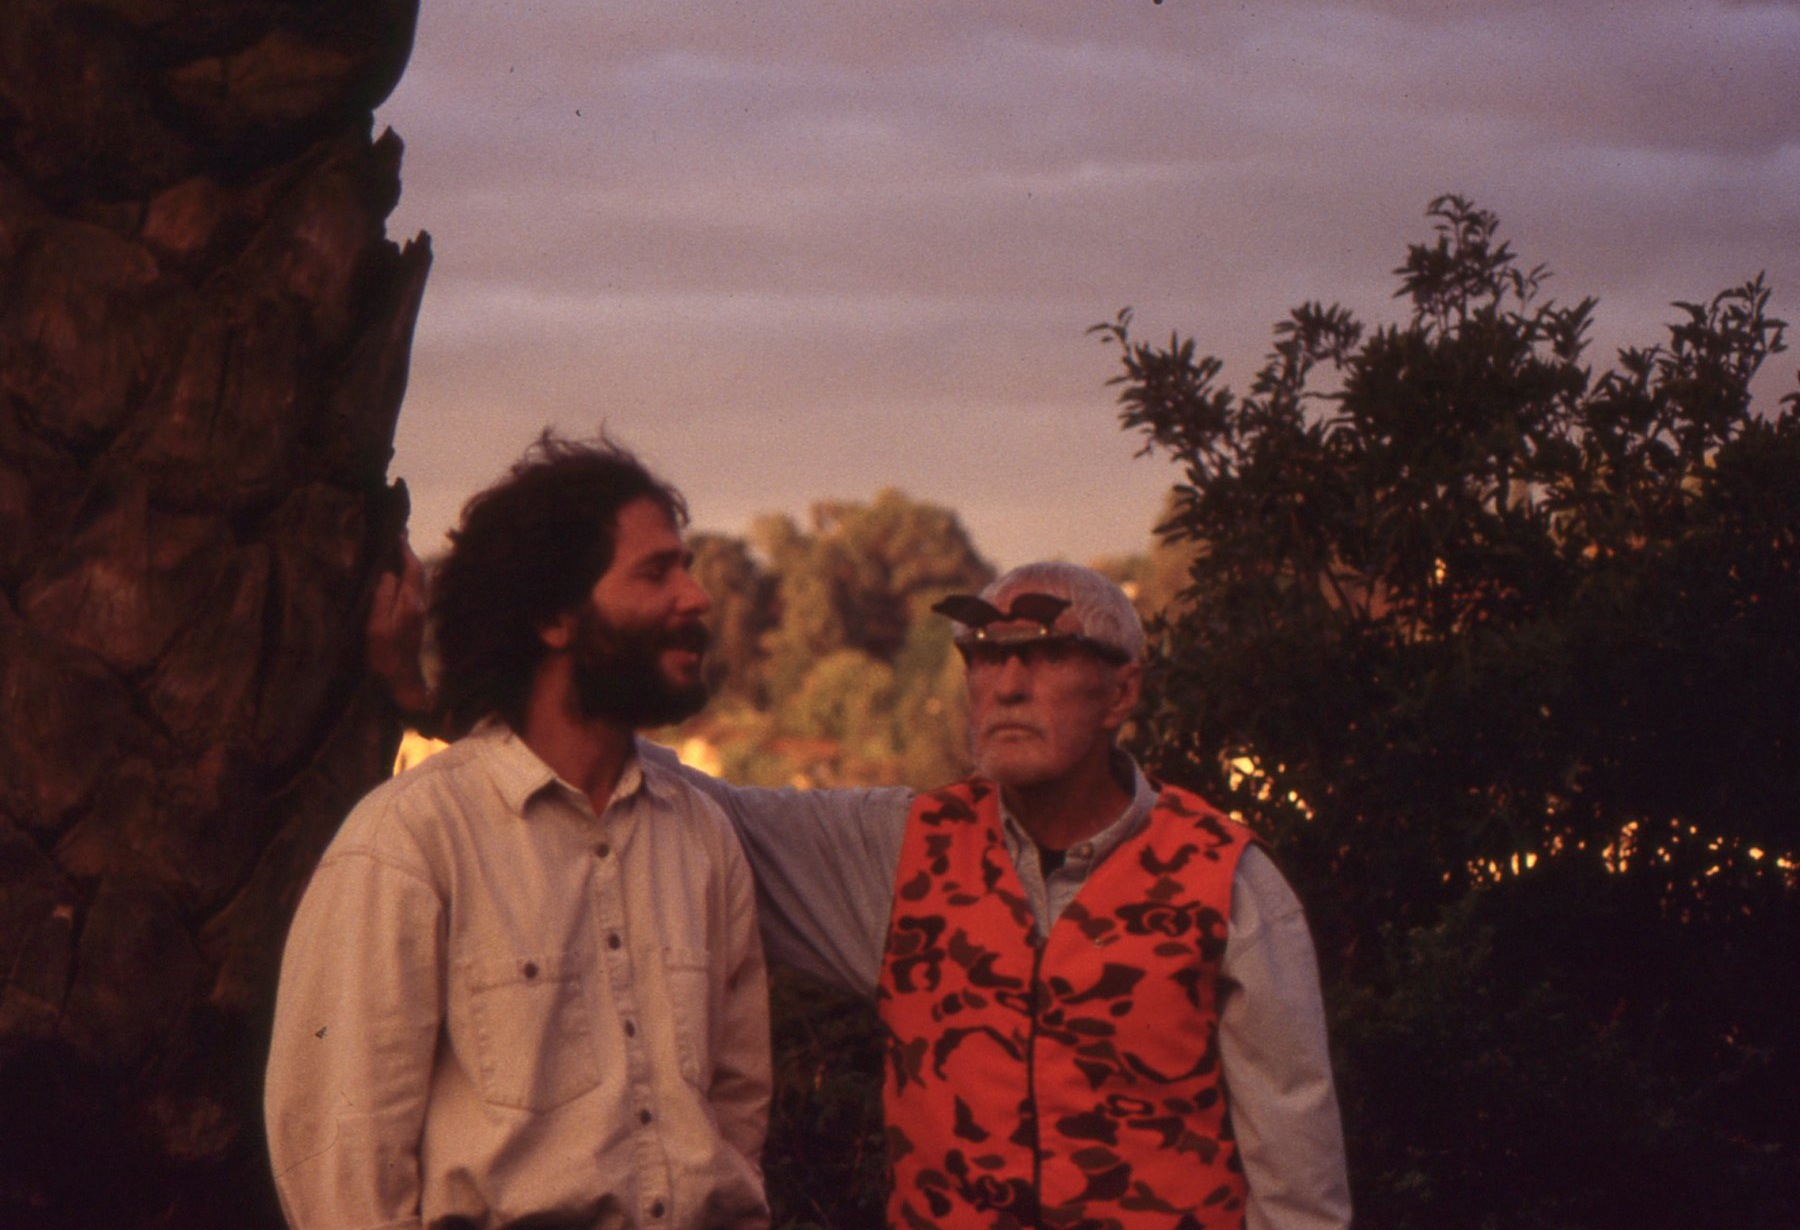 photo - Robert Forte and Tim Leary